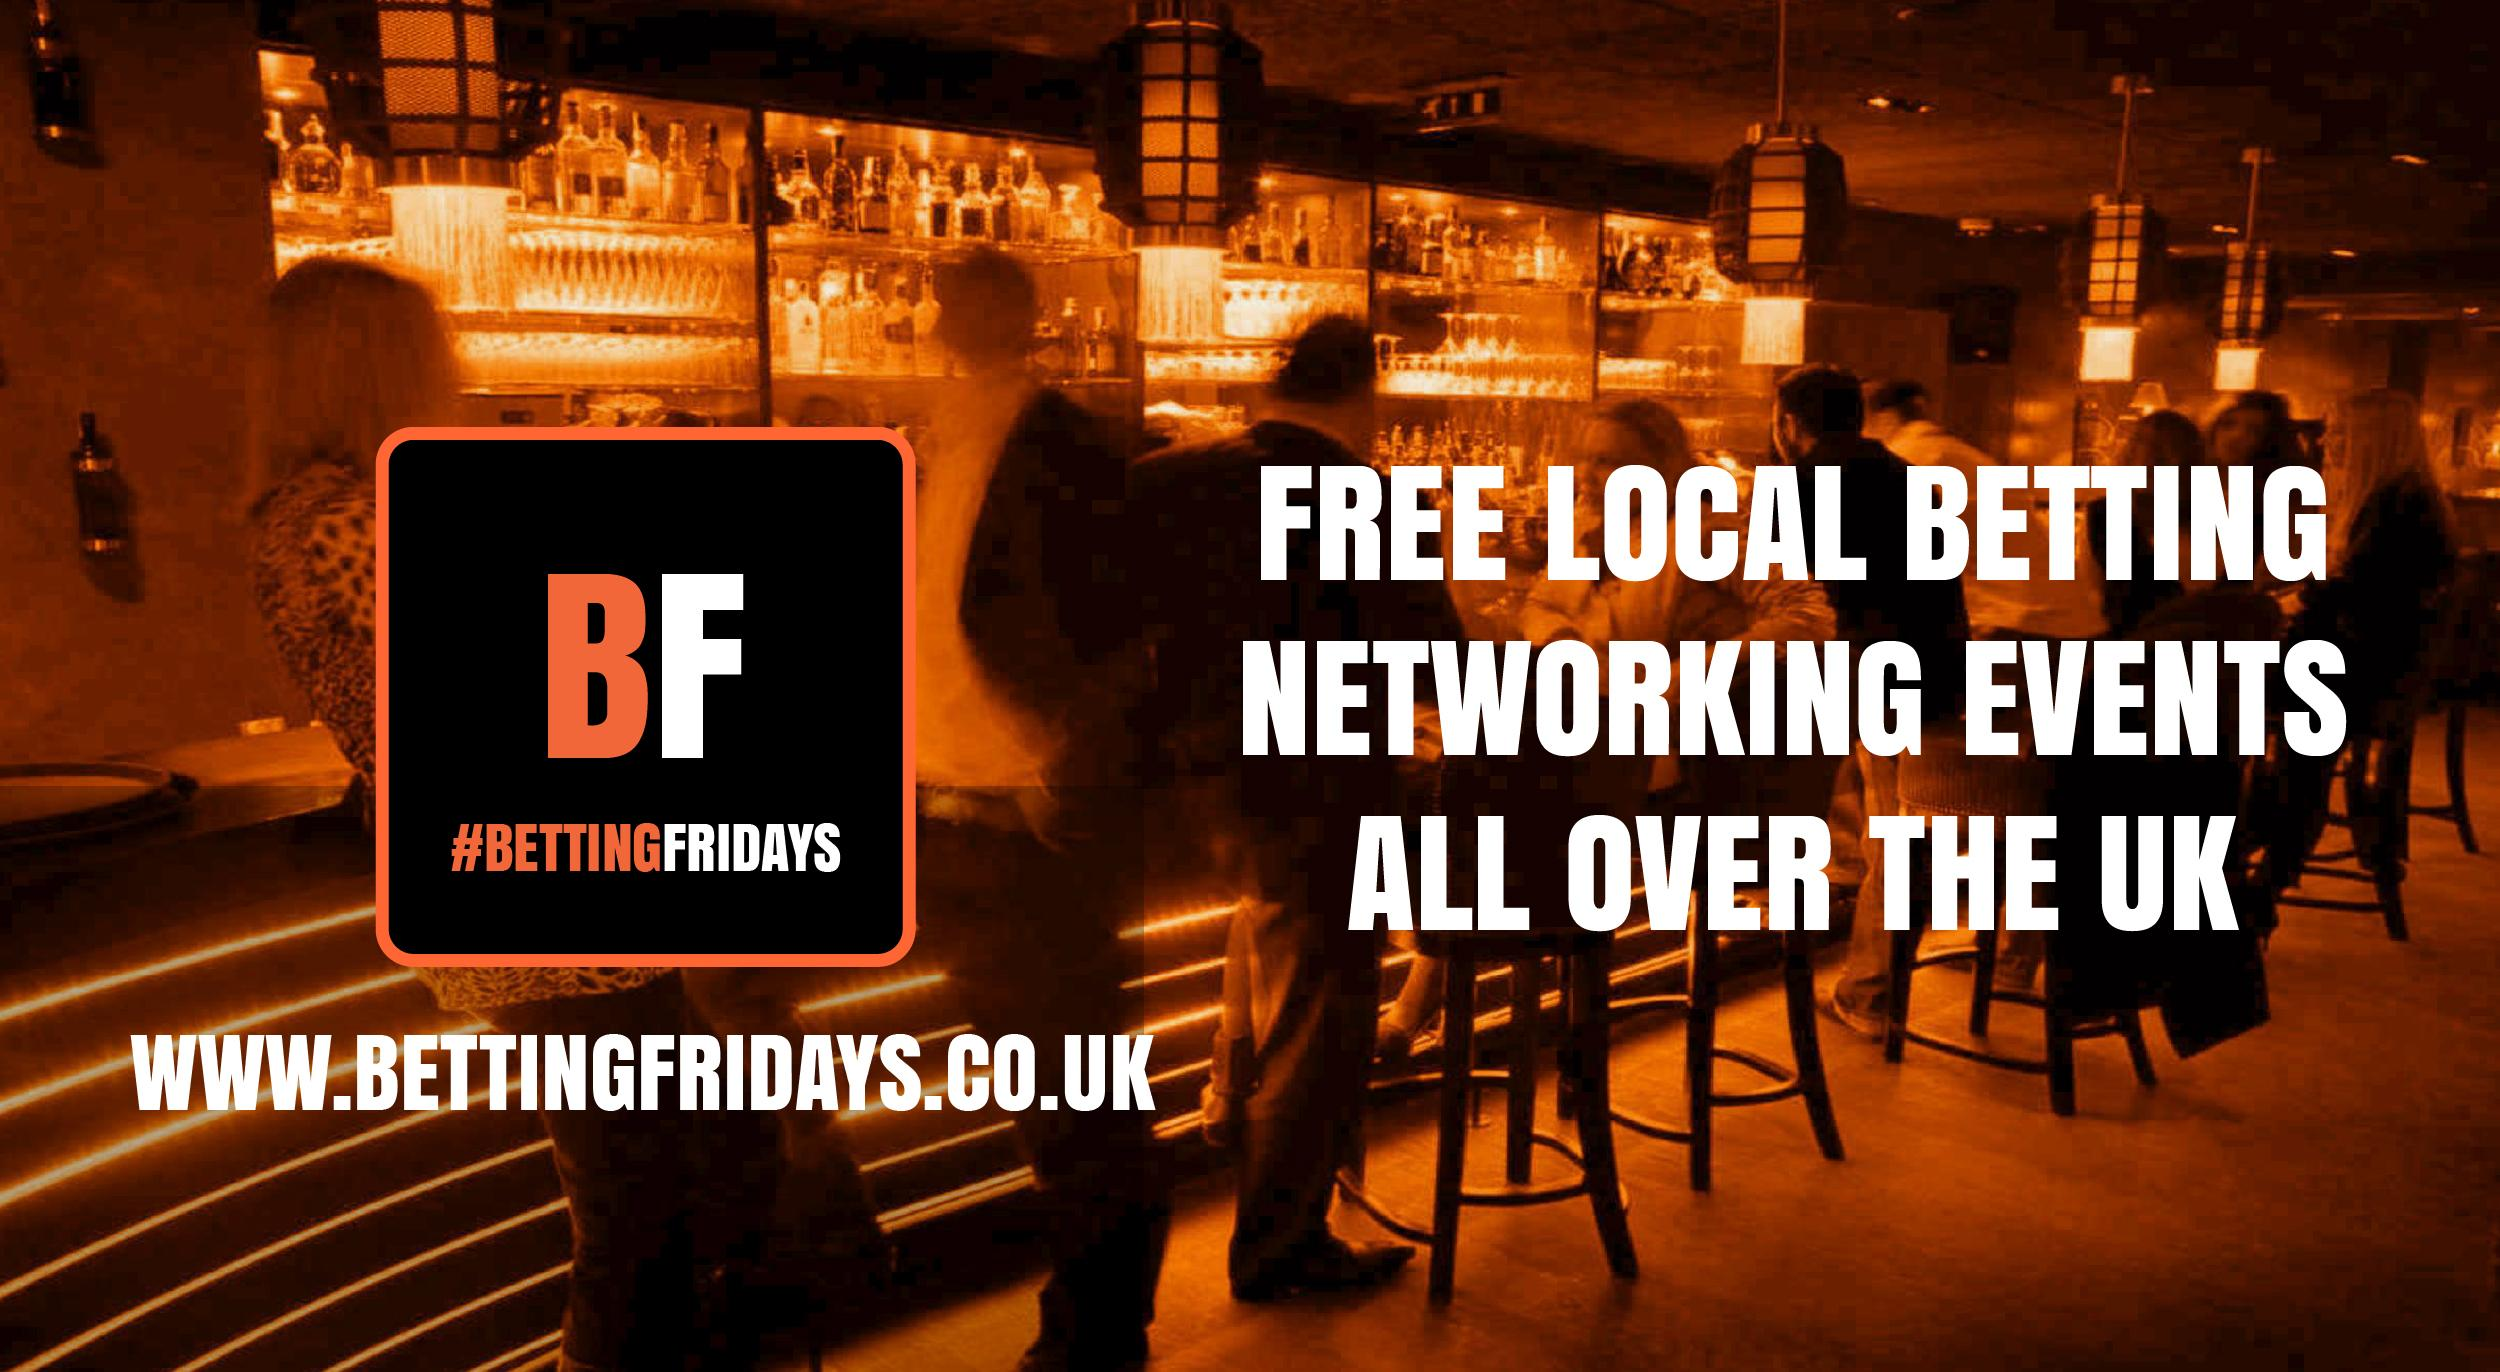 Betting Fridays! Free betting networking event in Newton Abbot